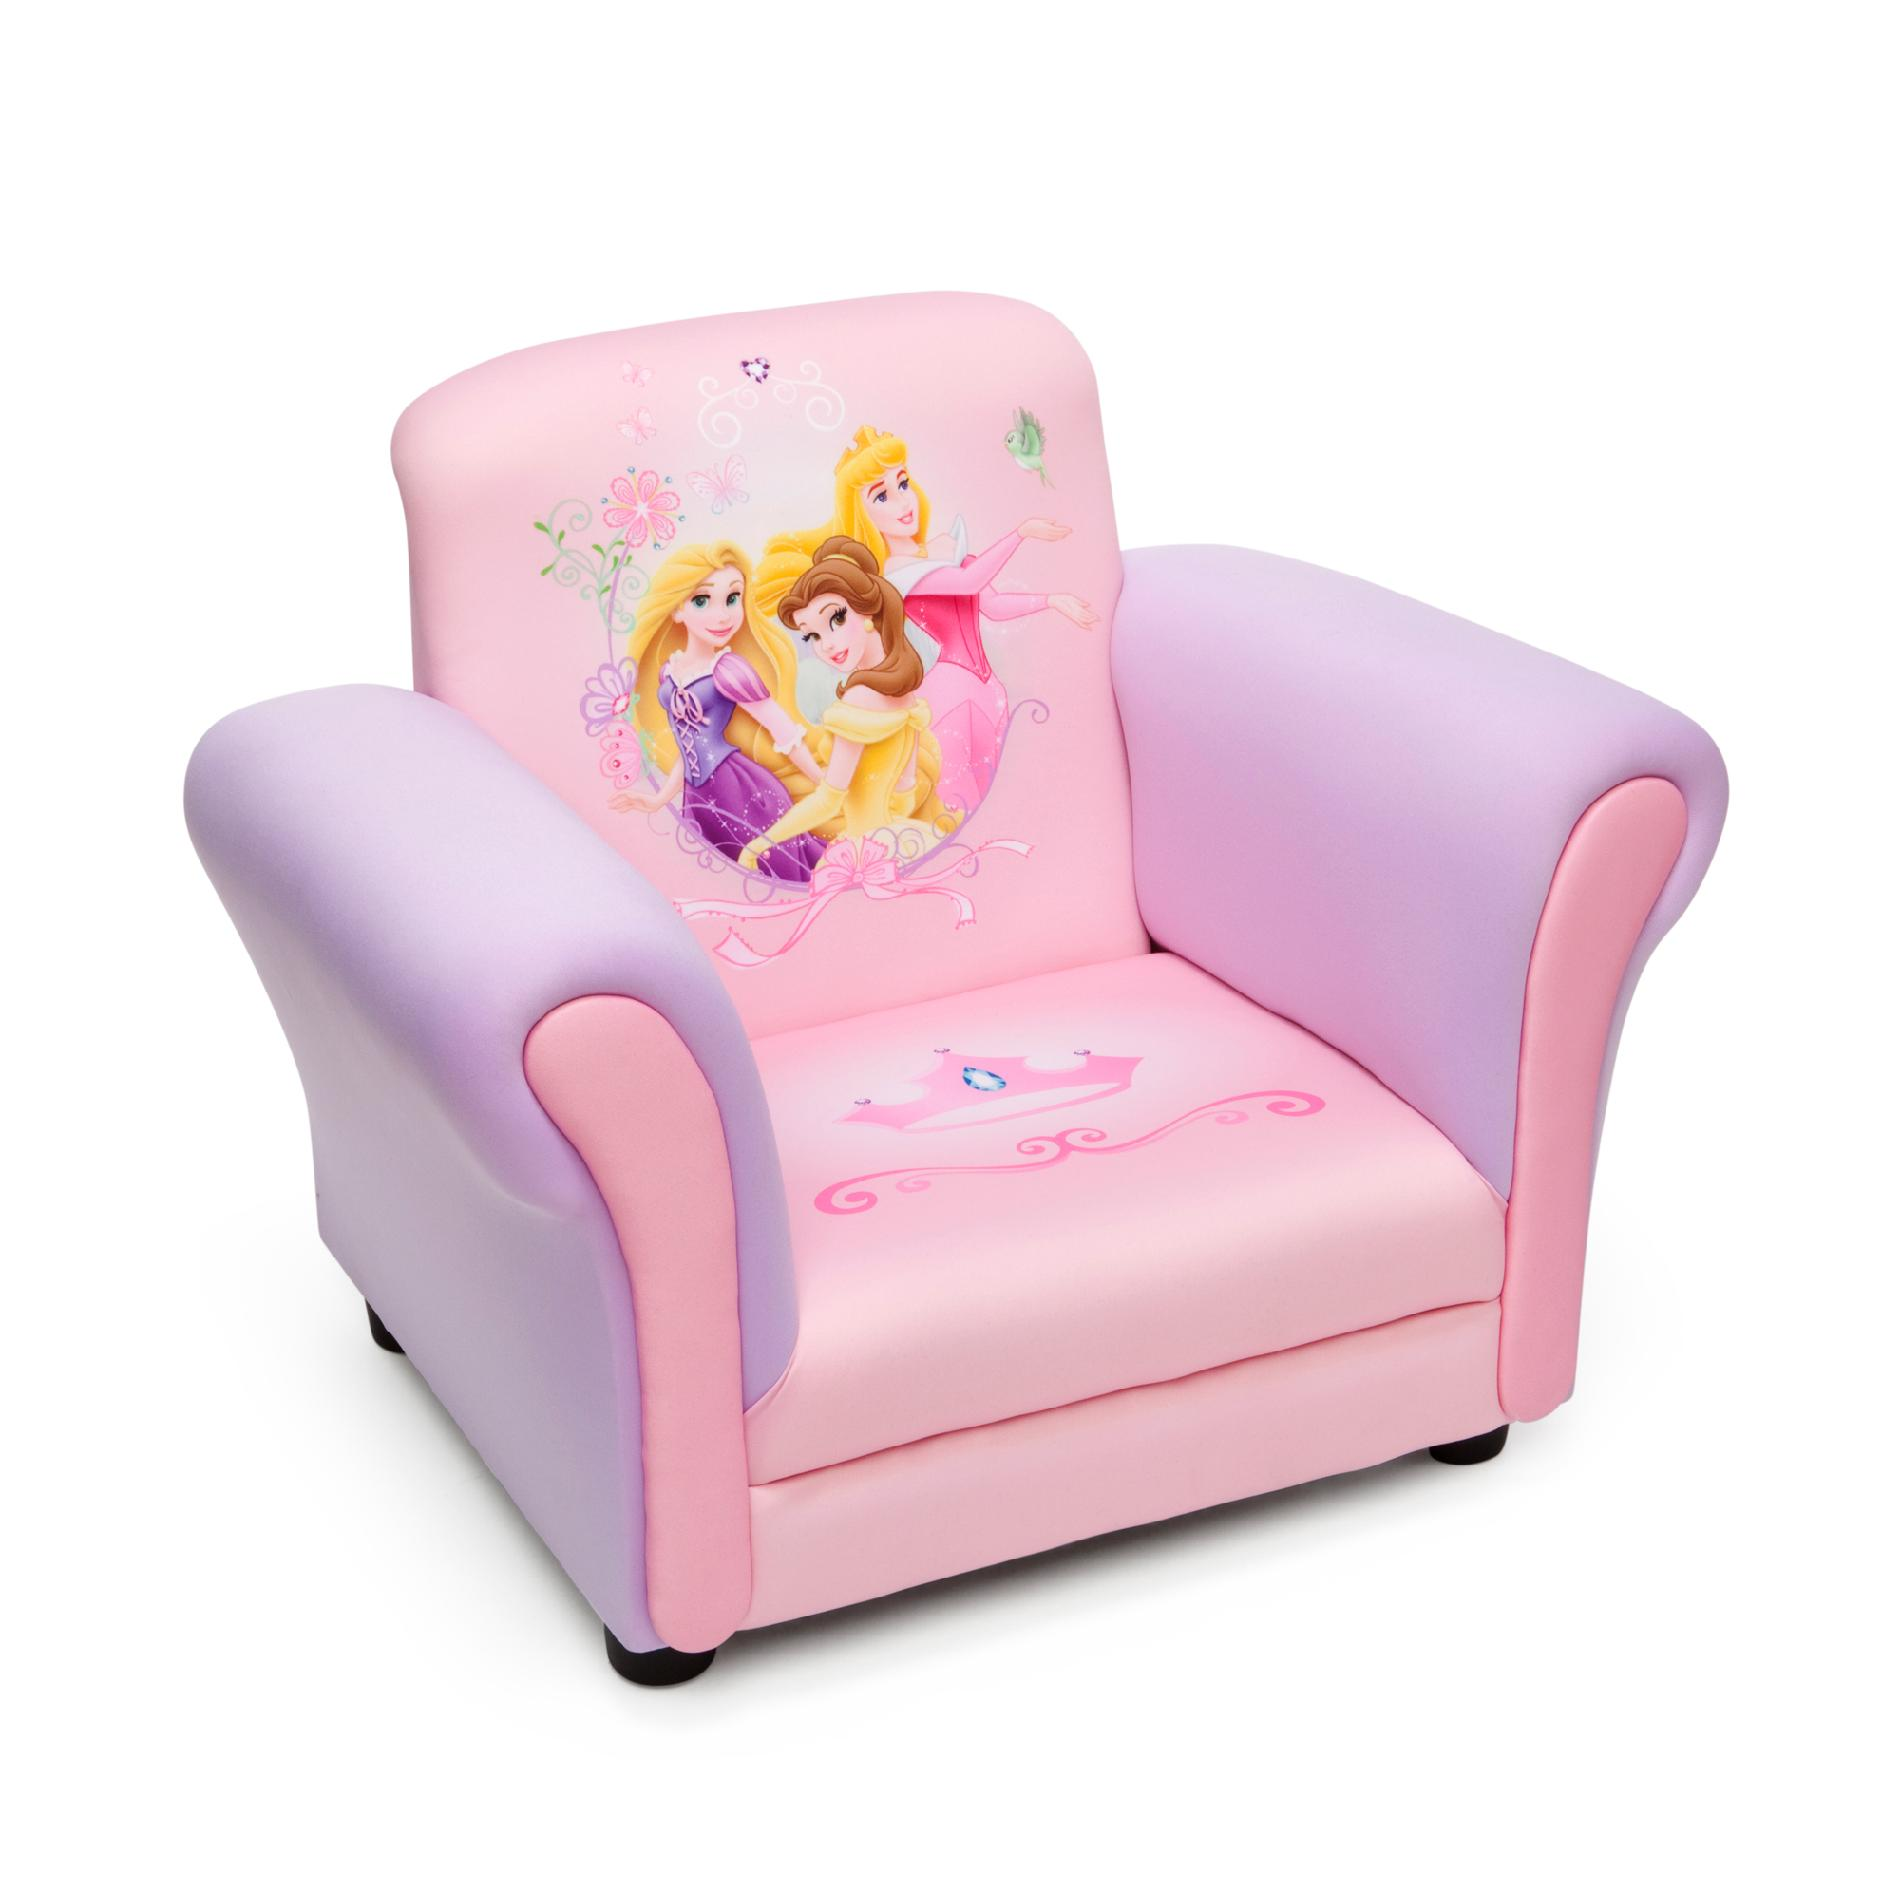 Princess Chairs For Toddlers Delta Children Disney Princess Kids Club Chair Baby